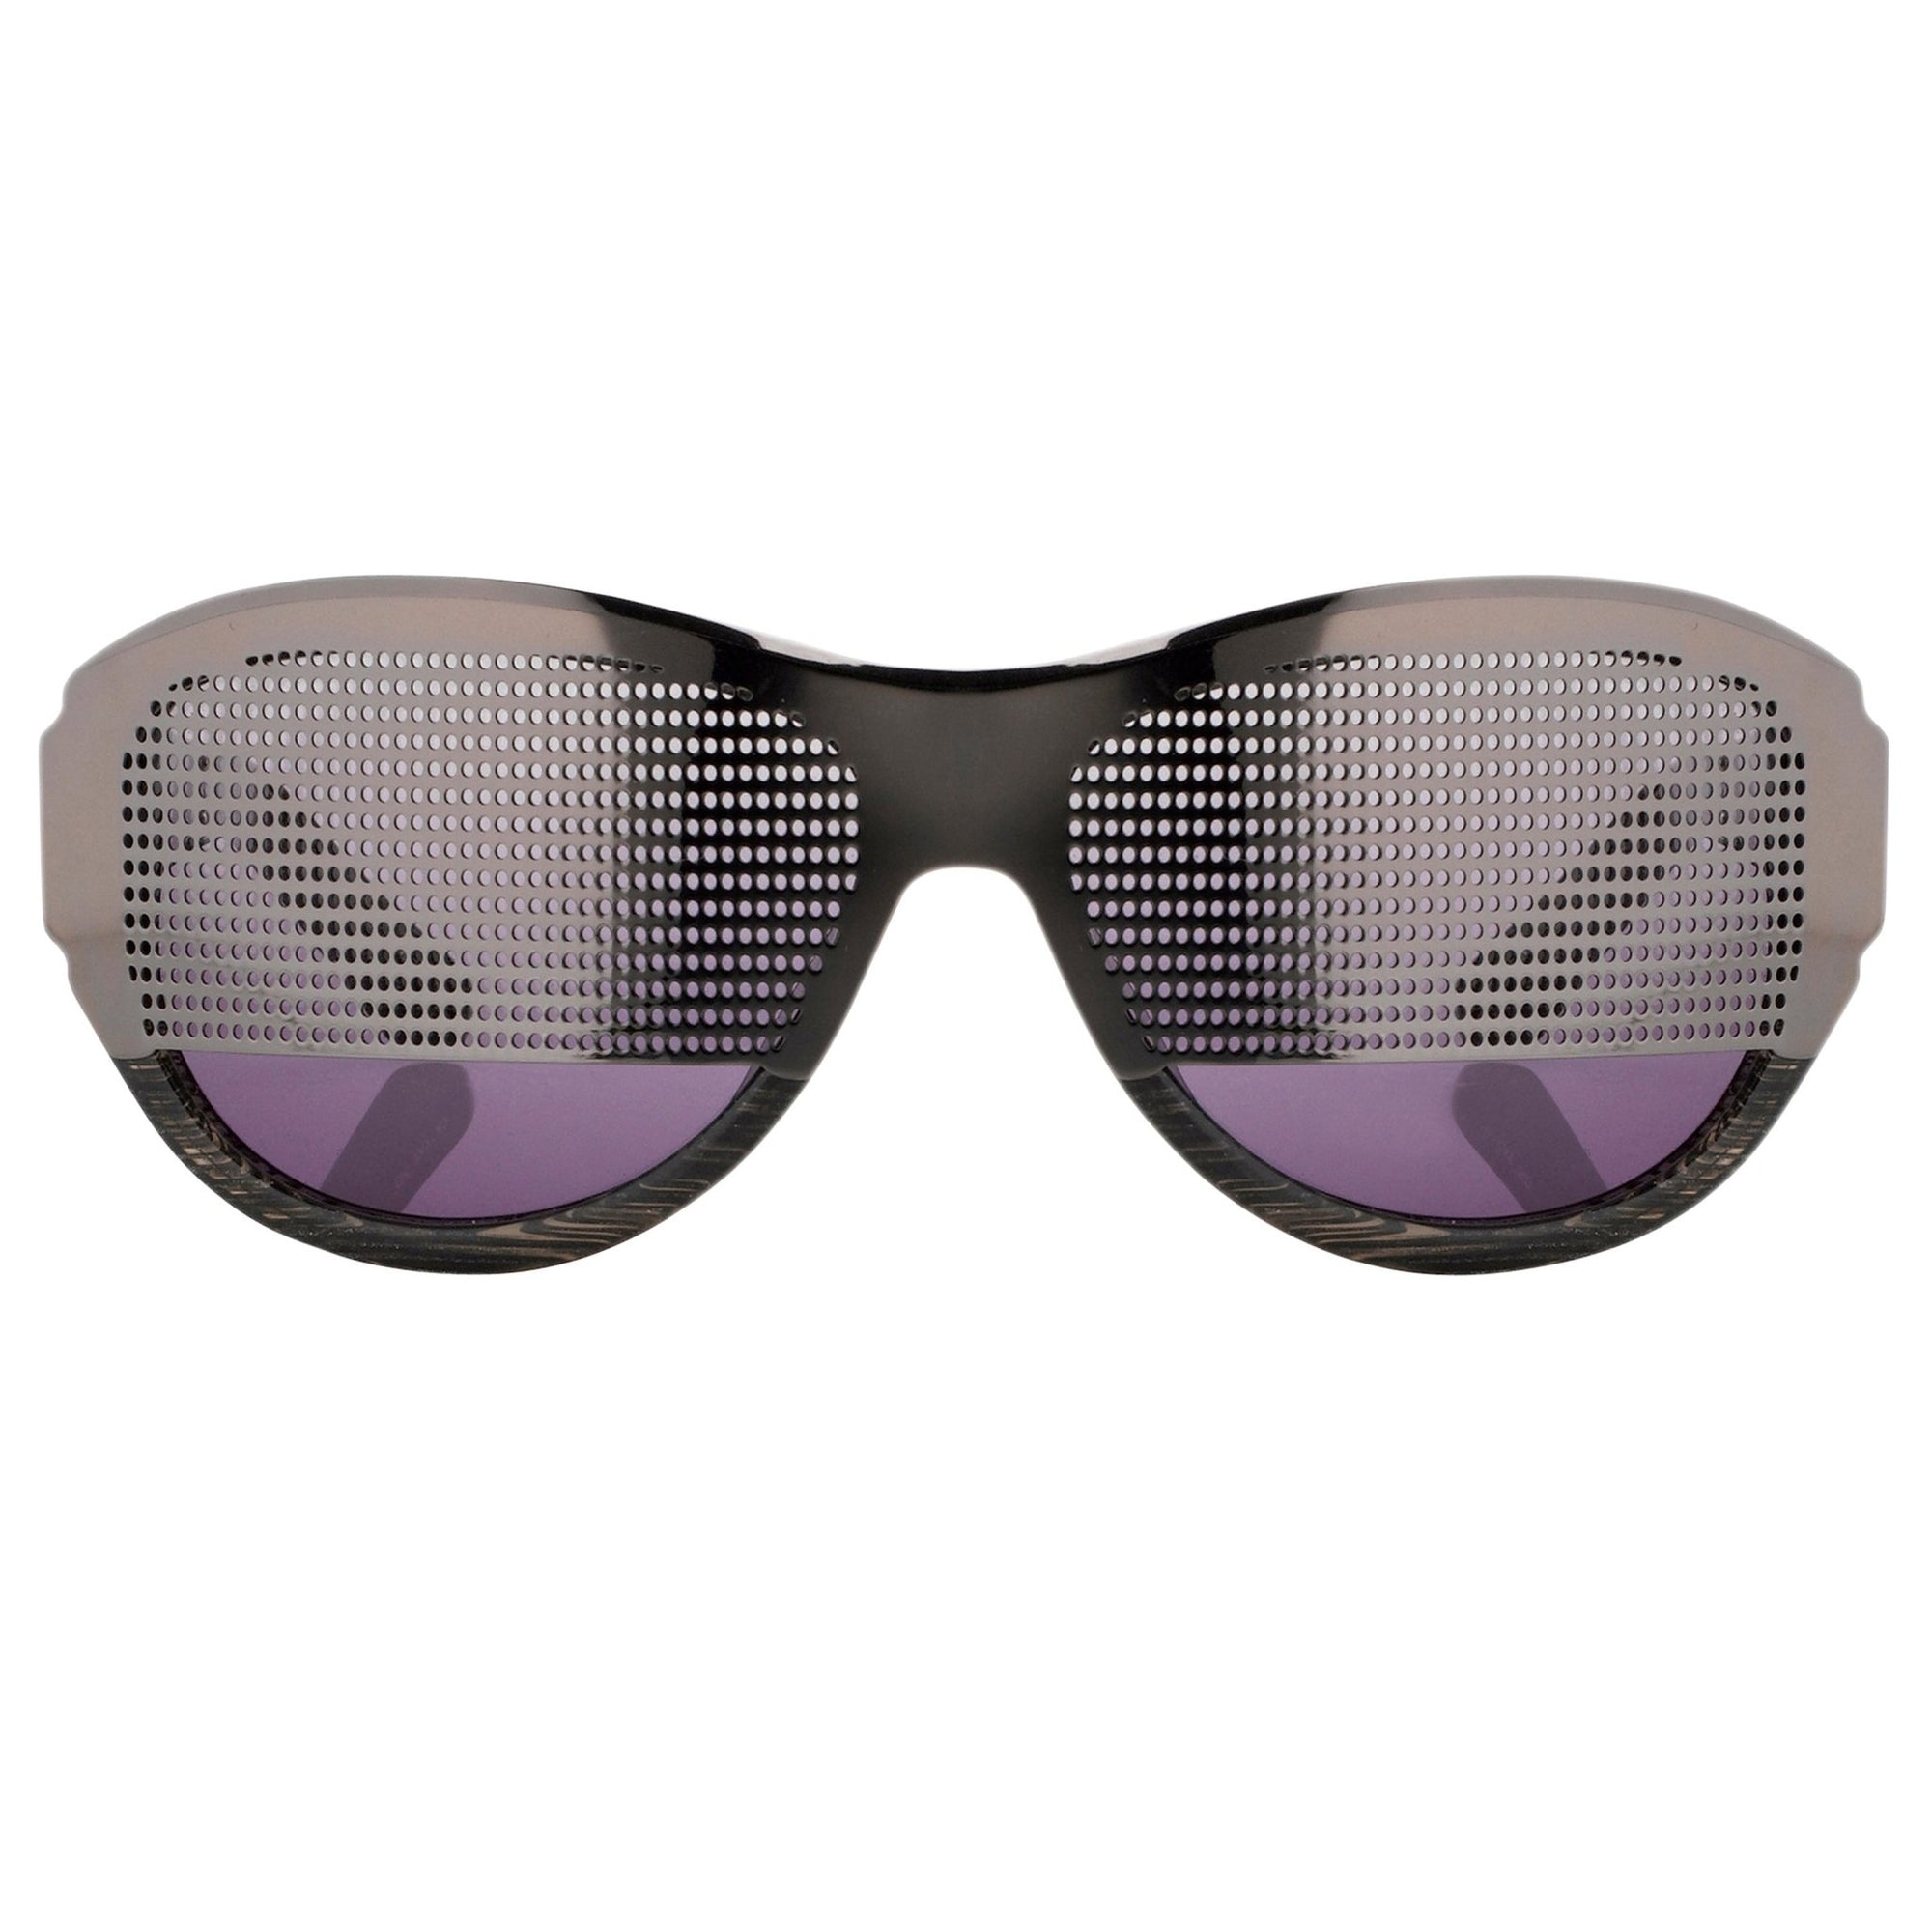 Todd Lynn Sunglasses Special Frame Silver/Black and Purple Lenses - TL2C3SUN - Watches & Crystals